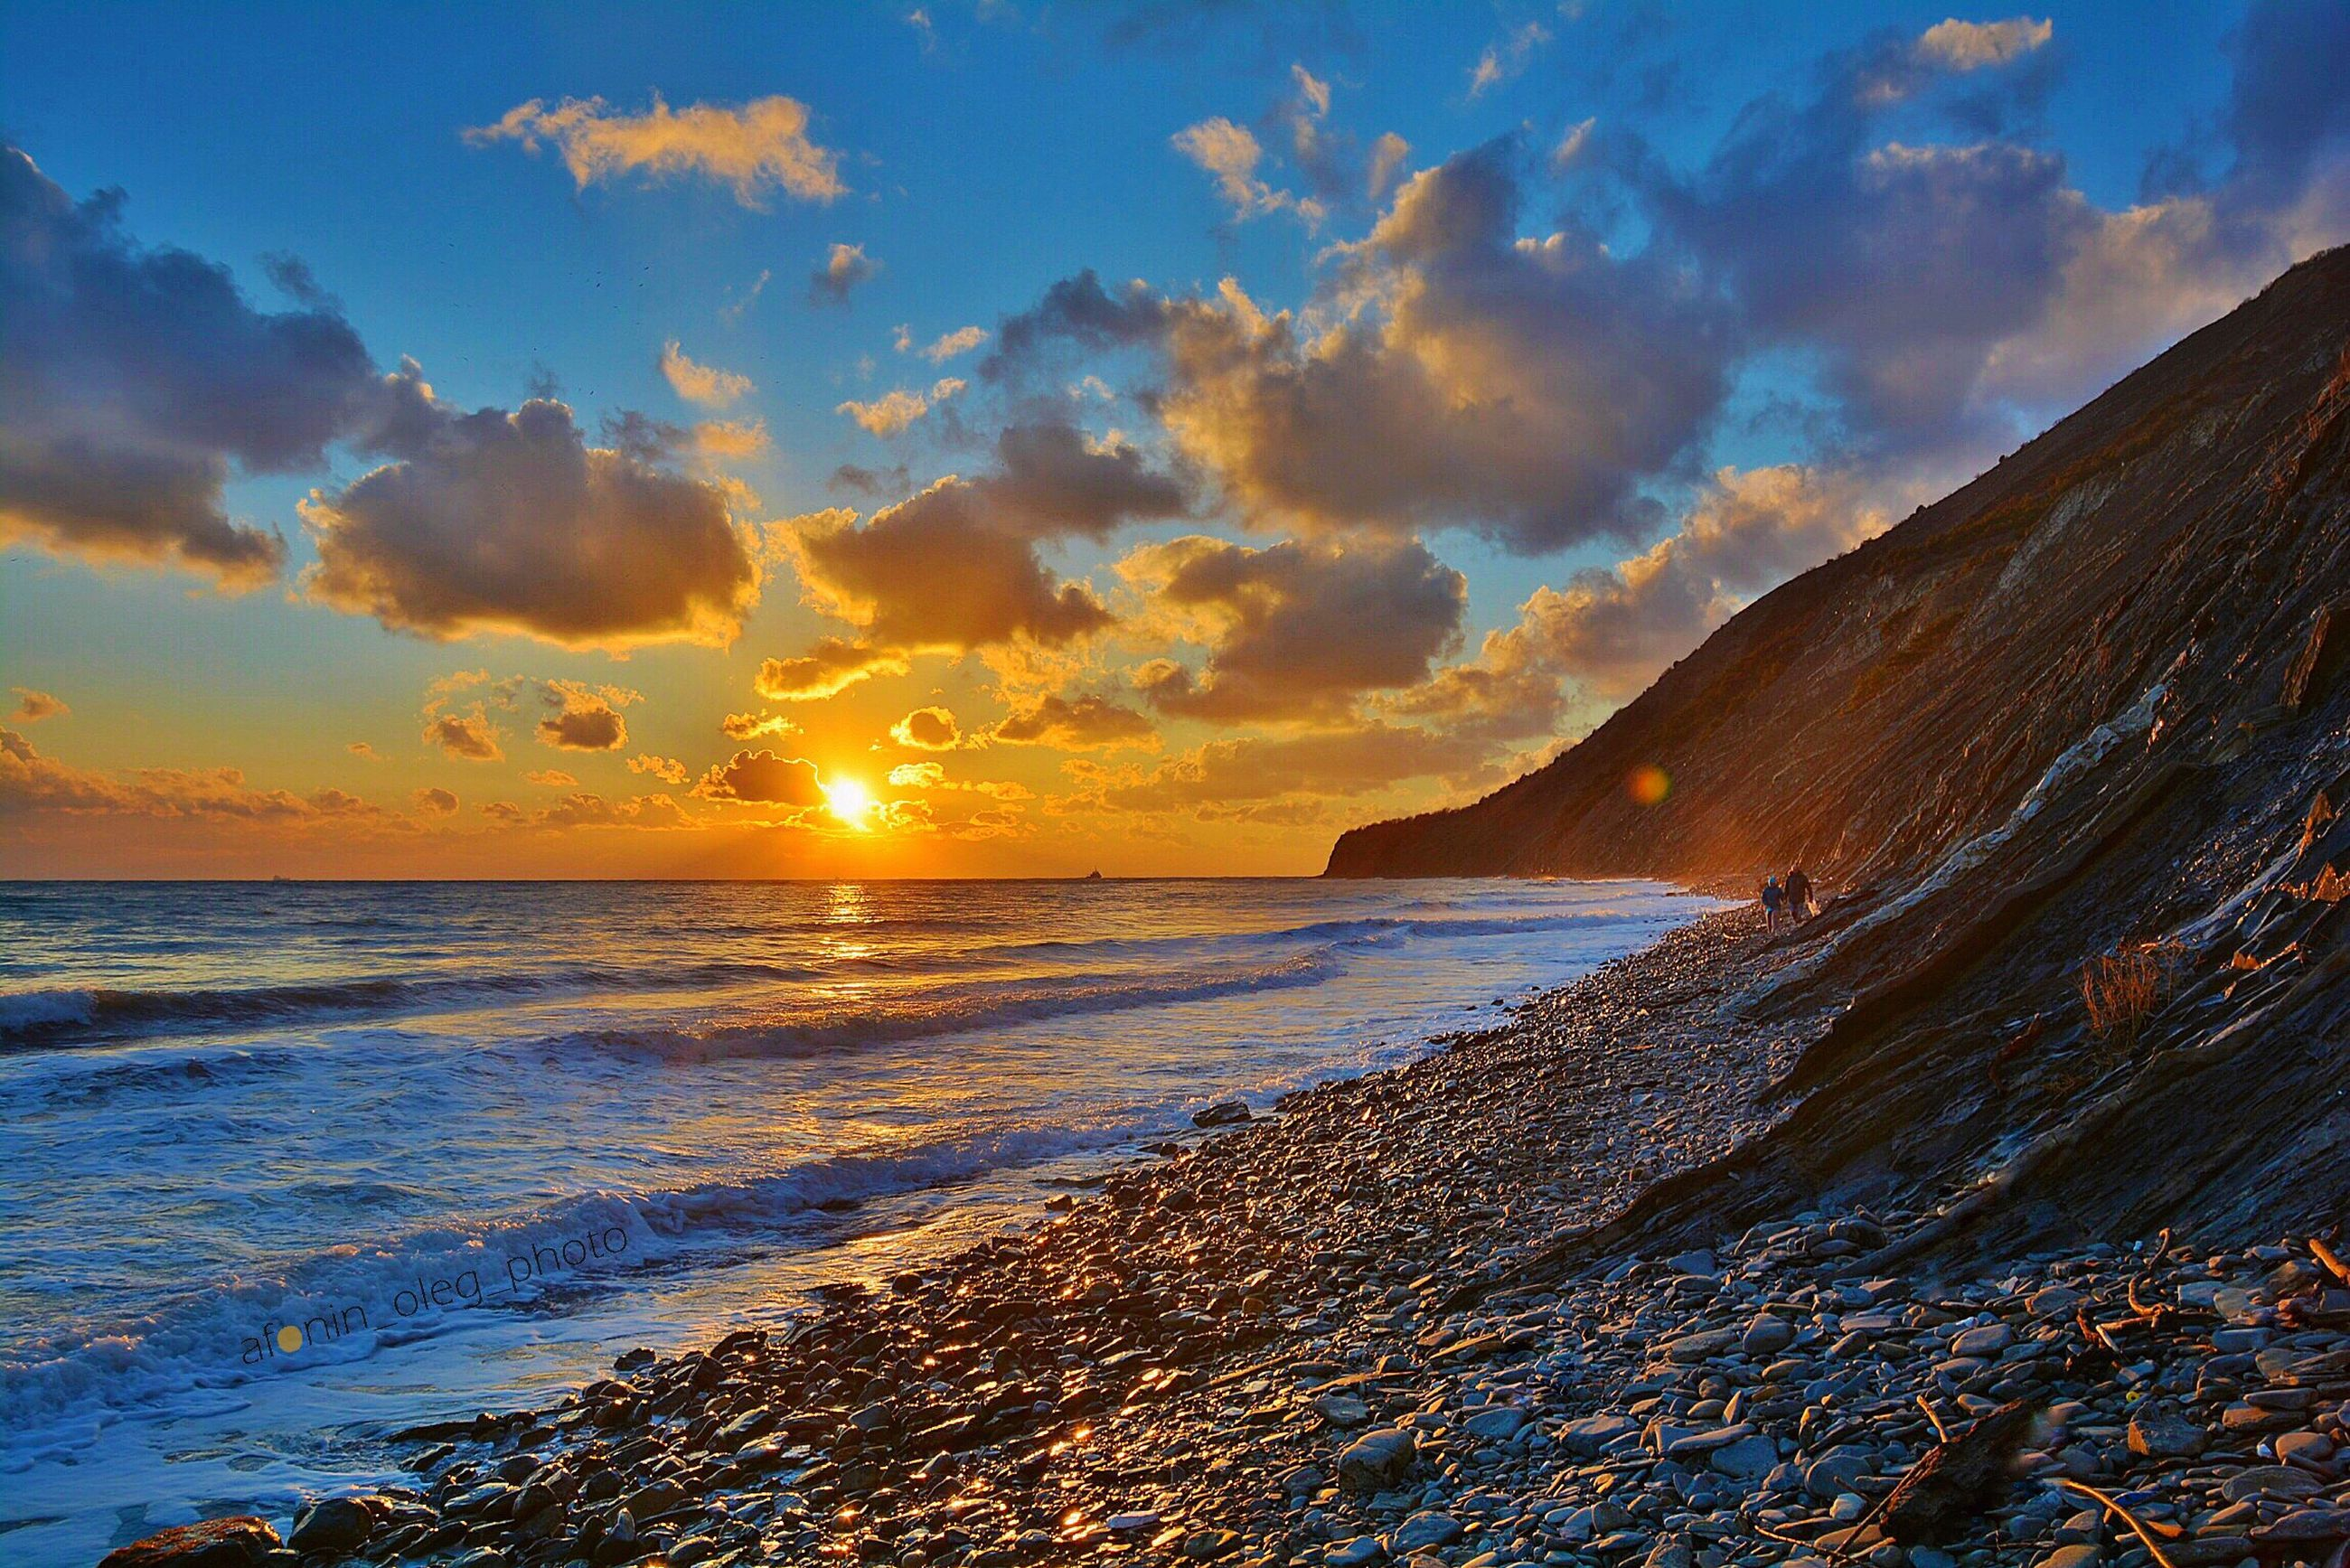 sea, sunset, beach, nature, scenics, sky, outdoors, landscape, sun, beauty in nature, no people, cloud - sky, water, horizon over water